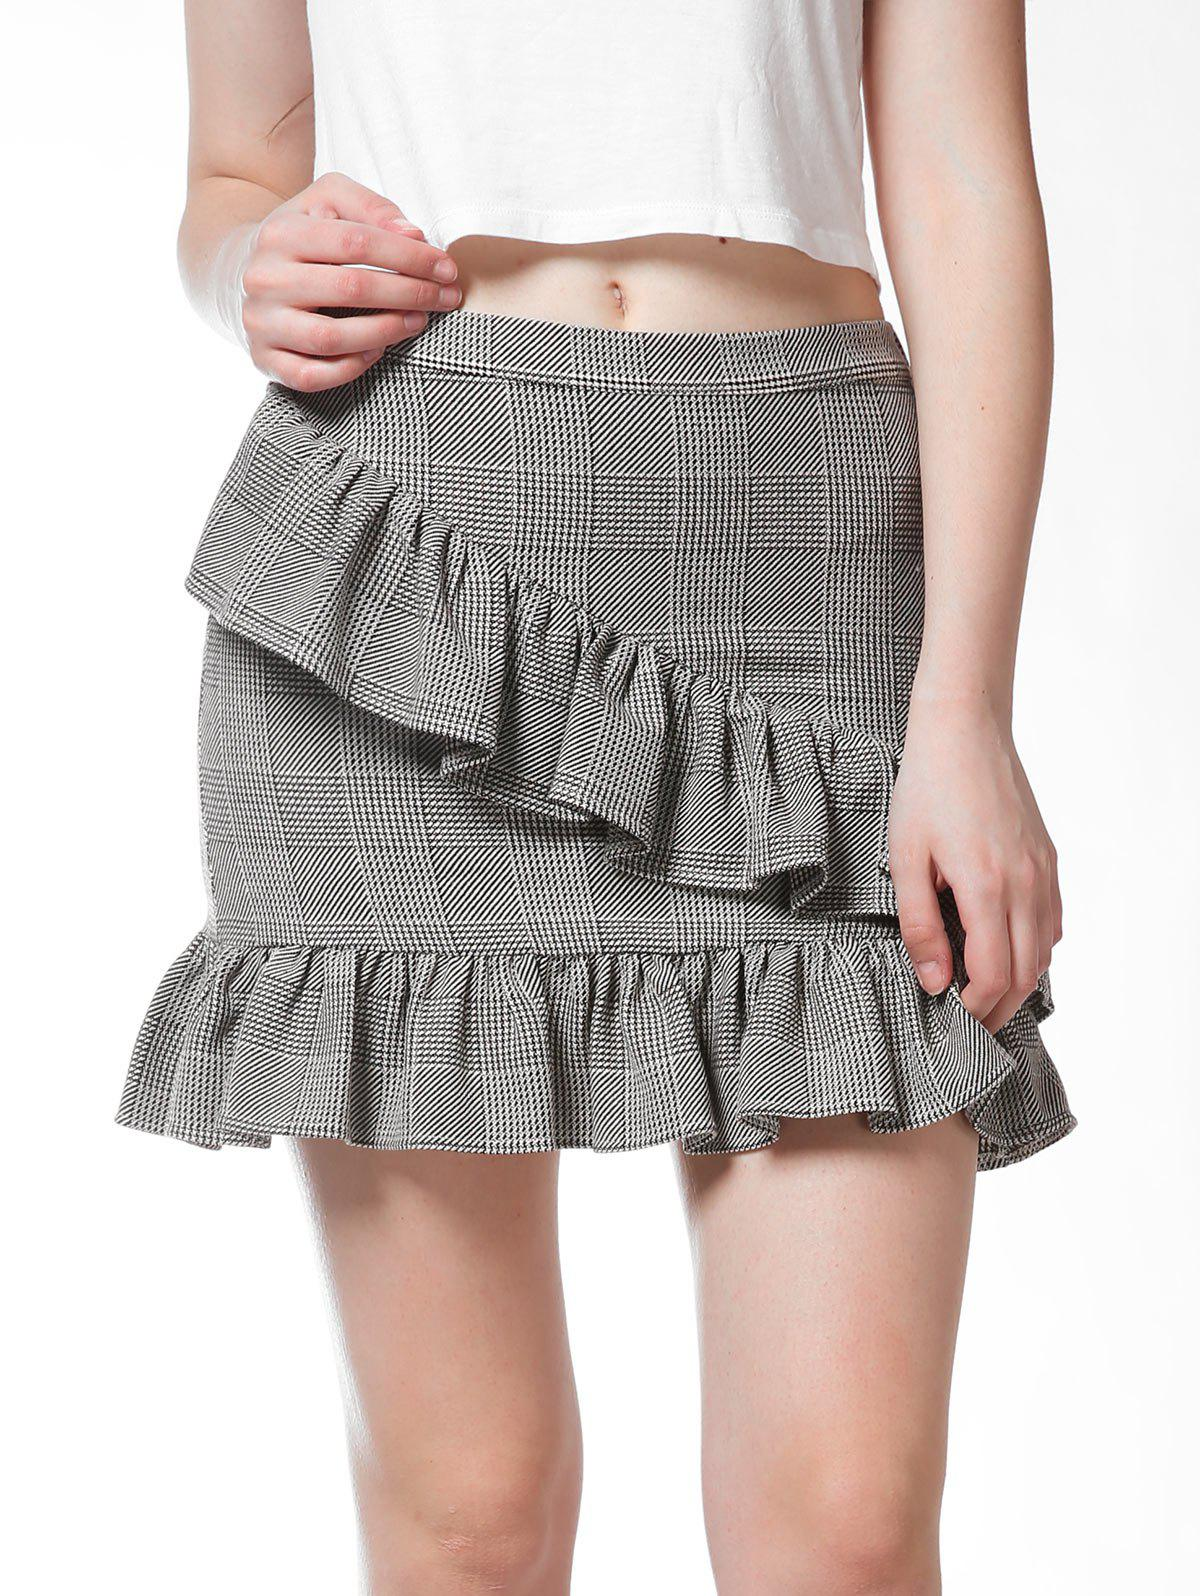 FRENCH BAZAAR Plaid Swing Ruffle Bodycon Mini Skirt